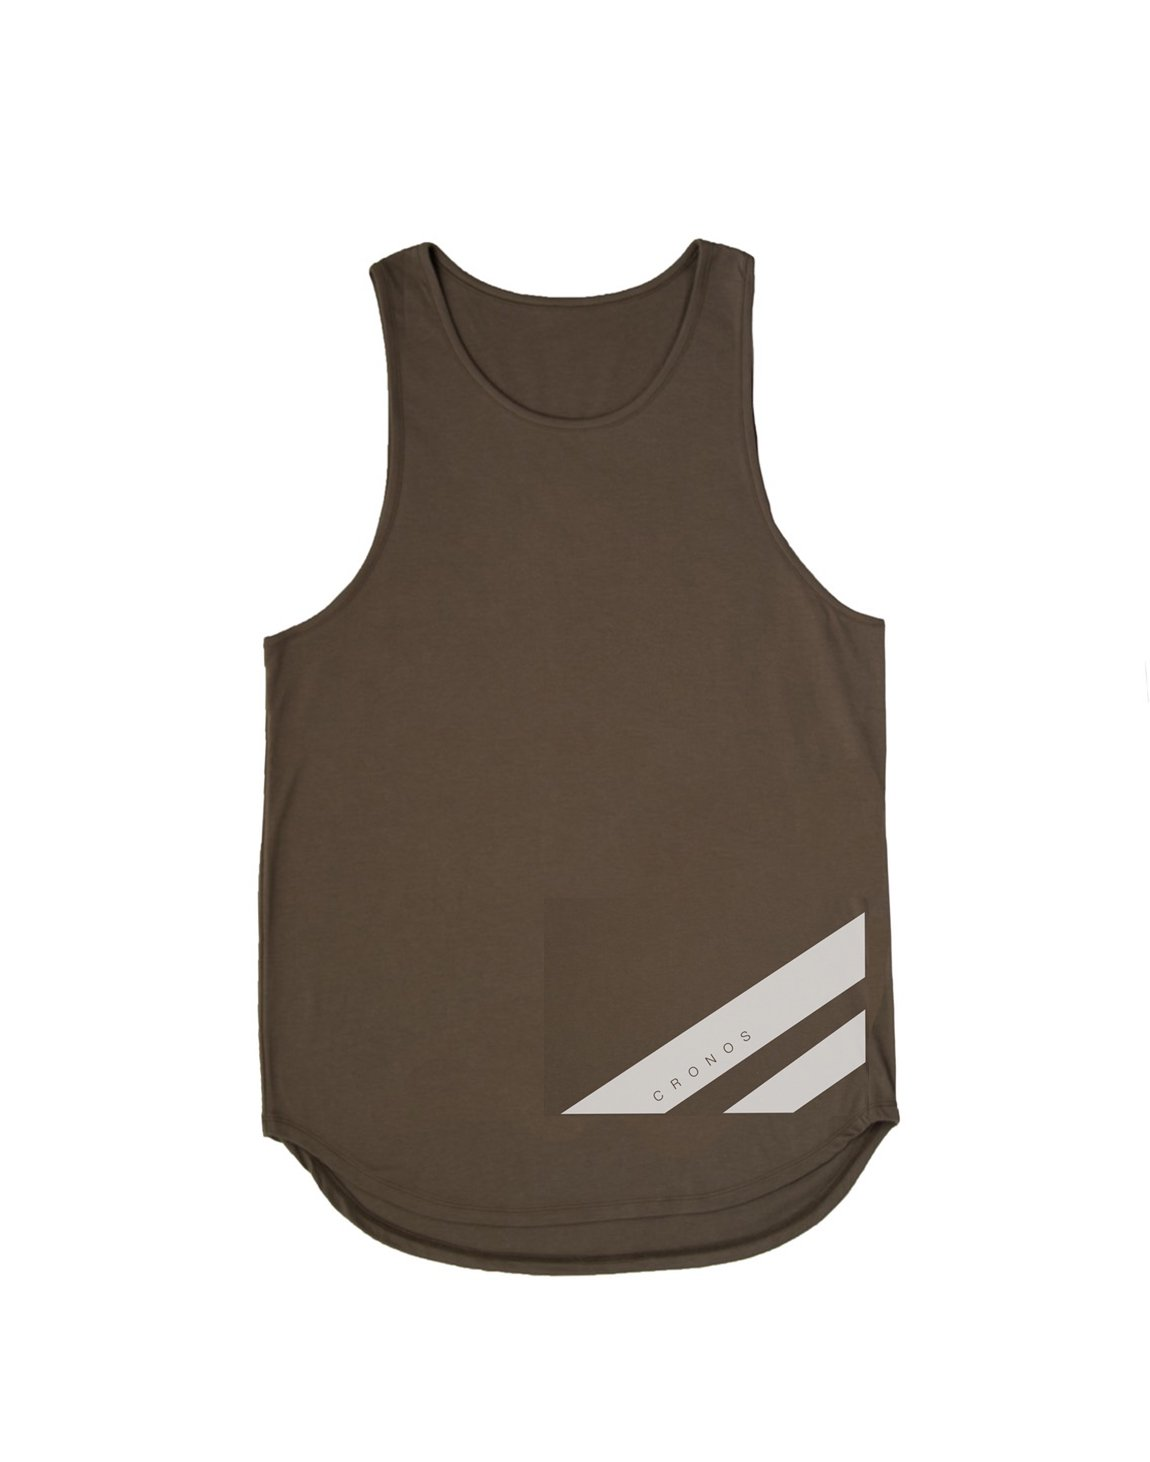 <img class='new_mark_img1' src='https://img.shop-pro.jp/img/new/icons55.gif' style='border:none;display:inline;margin:0px;padding:0px;width:auto;' />CRONOS NEW STRIPE LOGO TANKTOP【KHAKI】